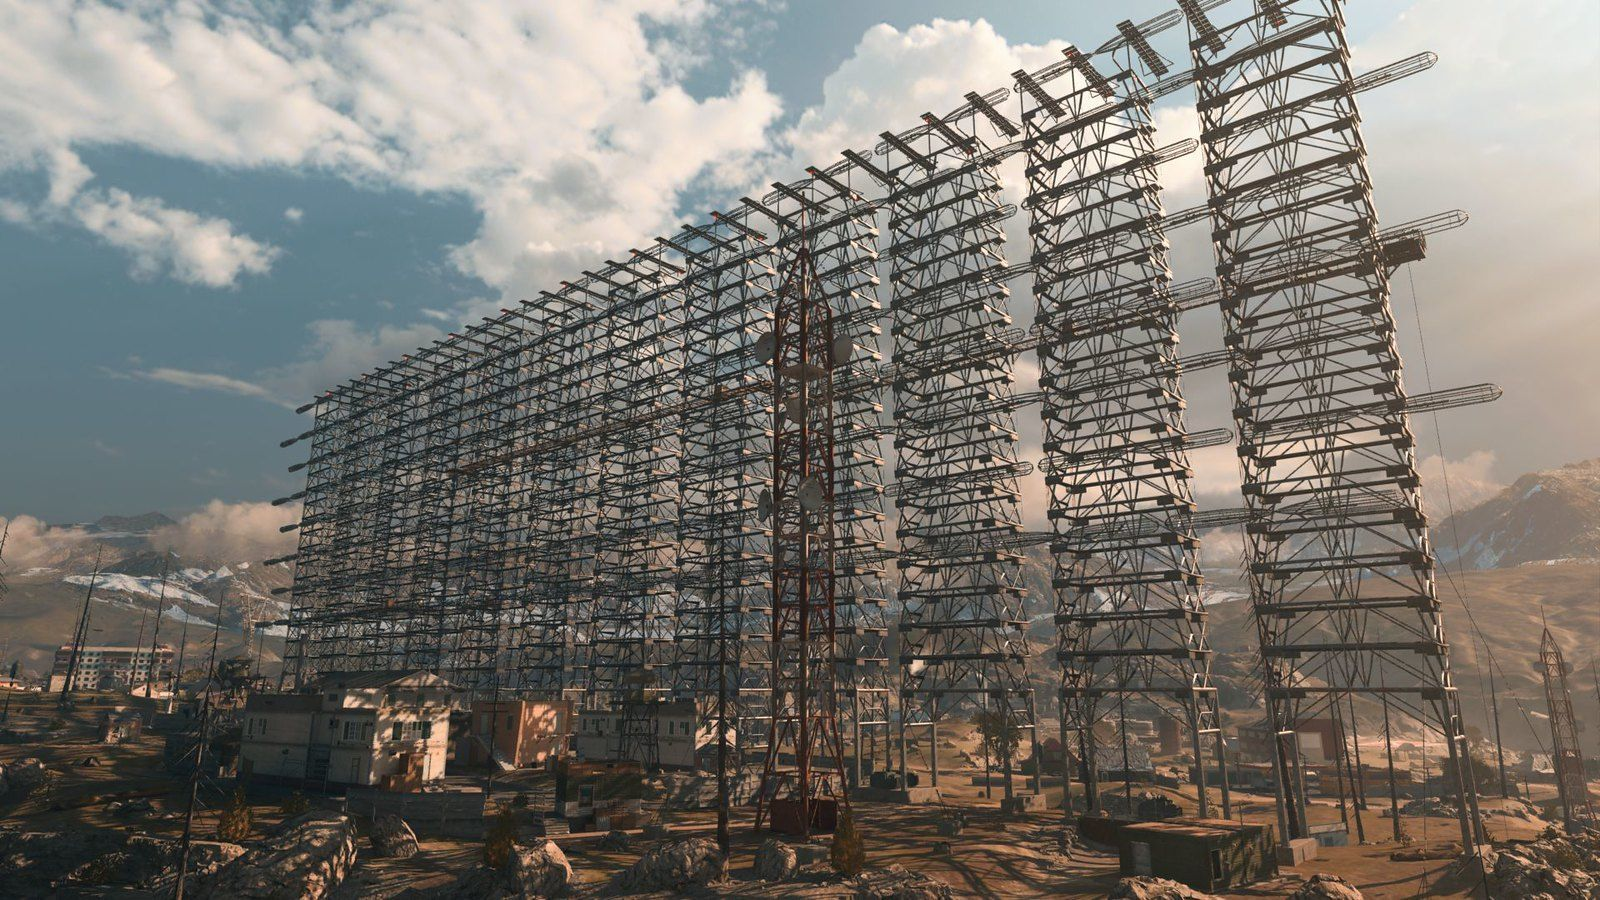 The radar array is located in the northeast